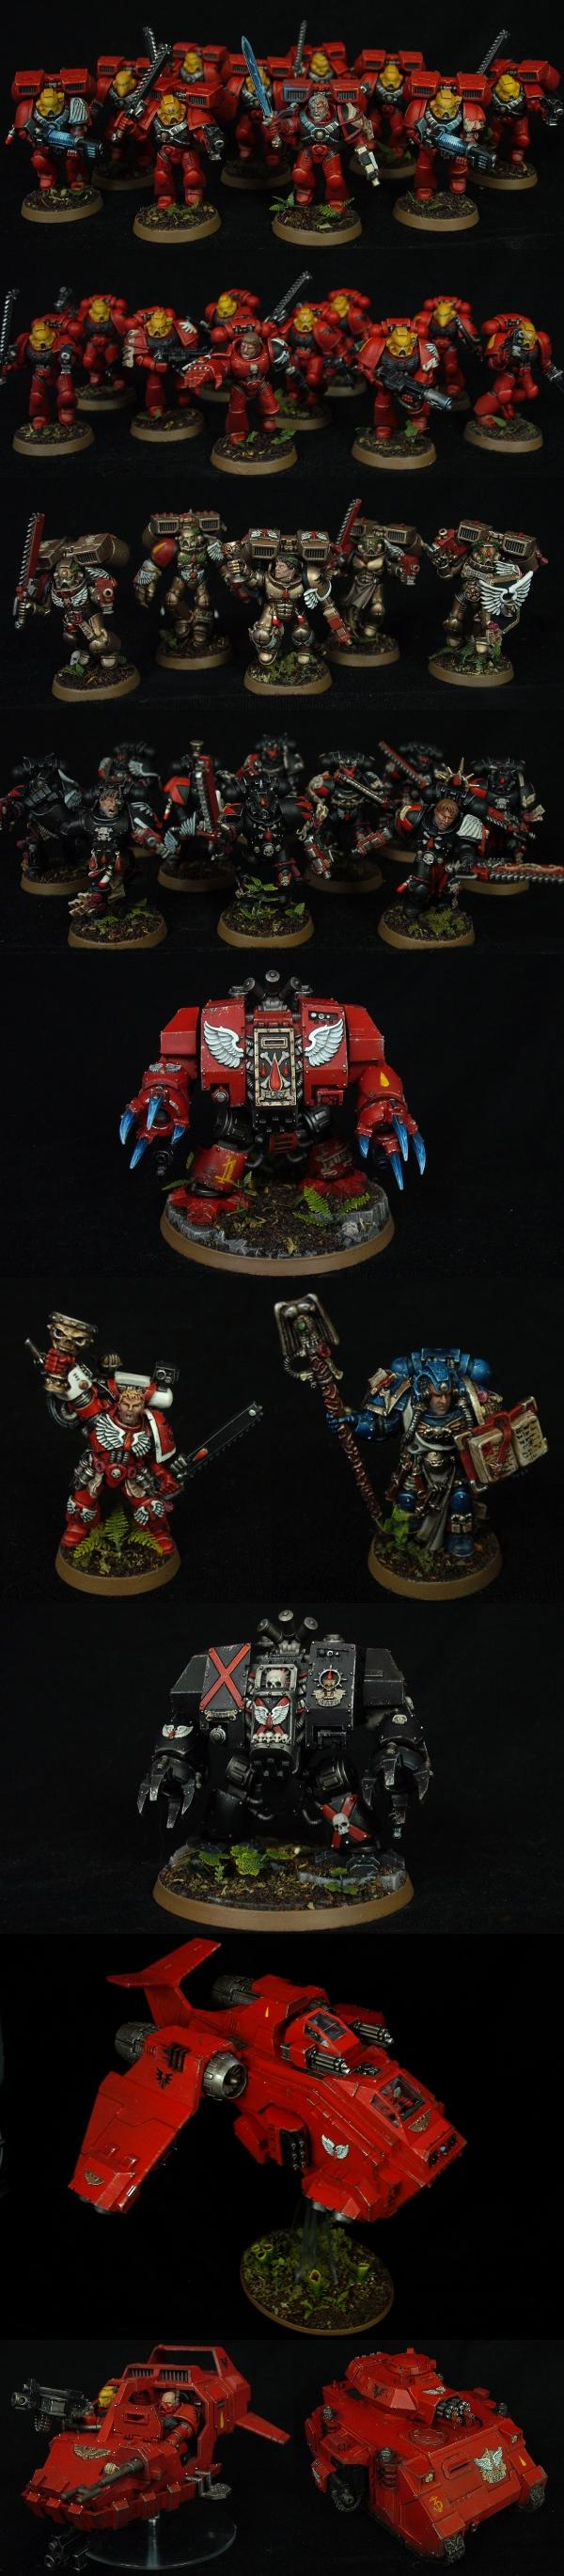 Army, Blood Angels, Dreadnought, Librarian, Space Marines, Storm Raven